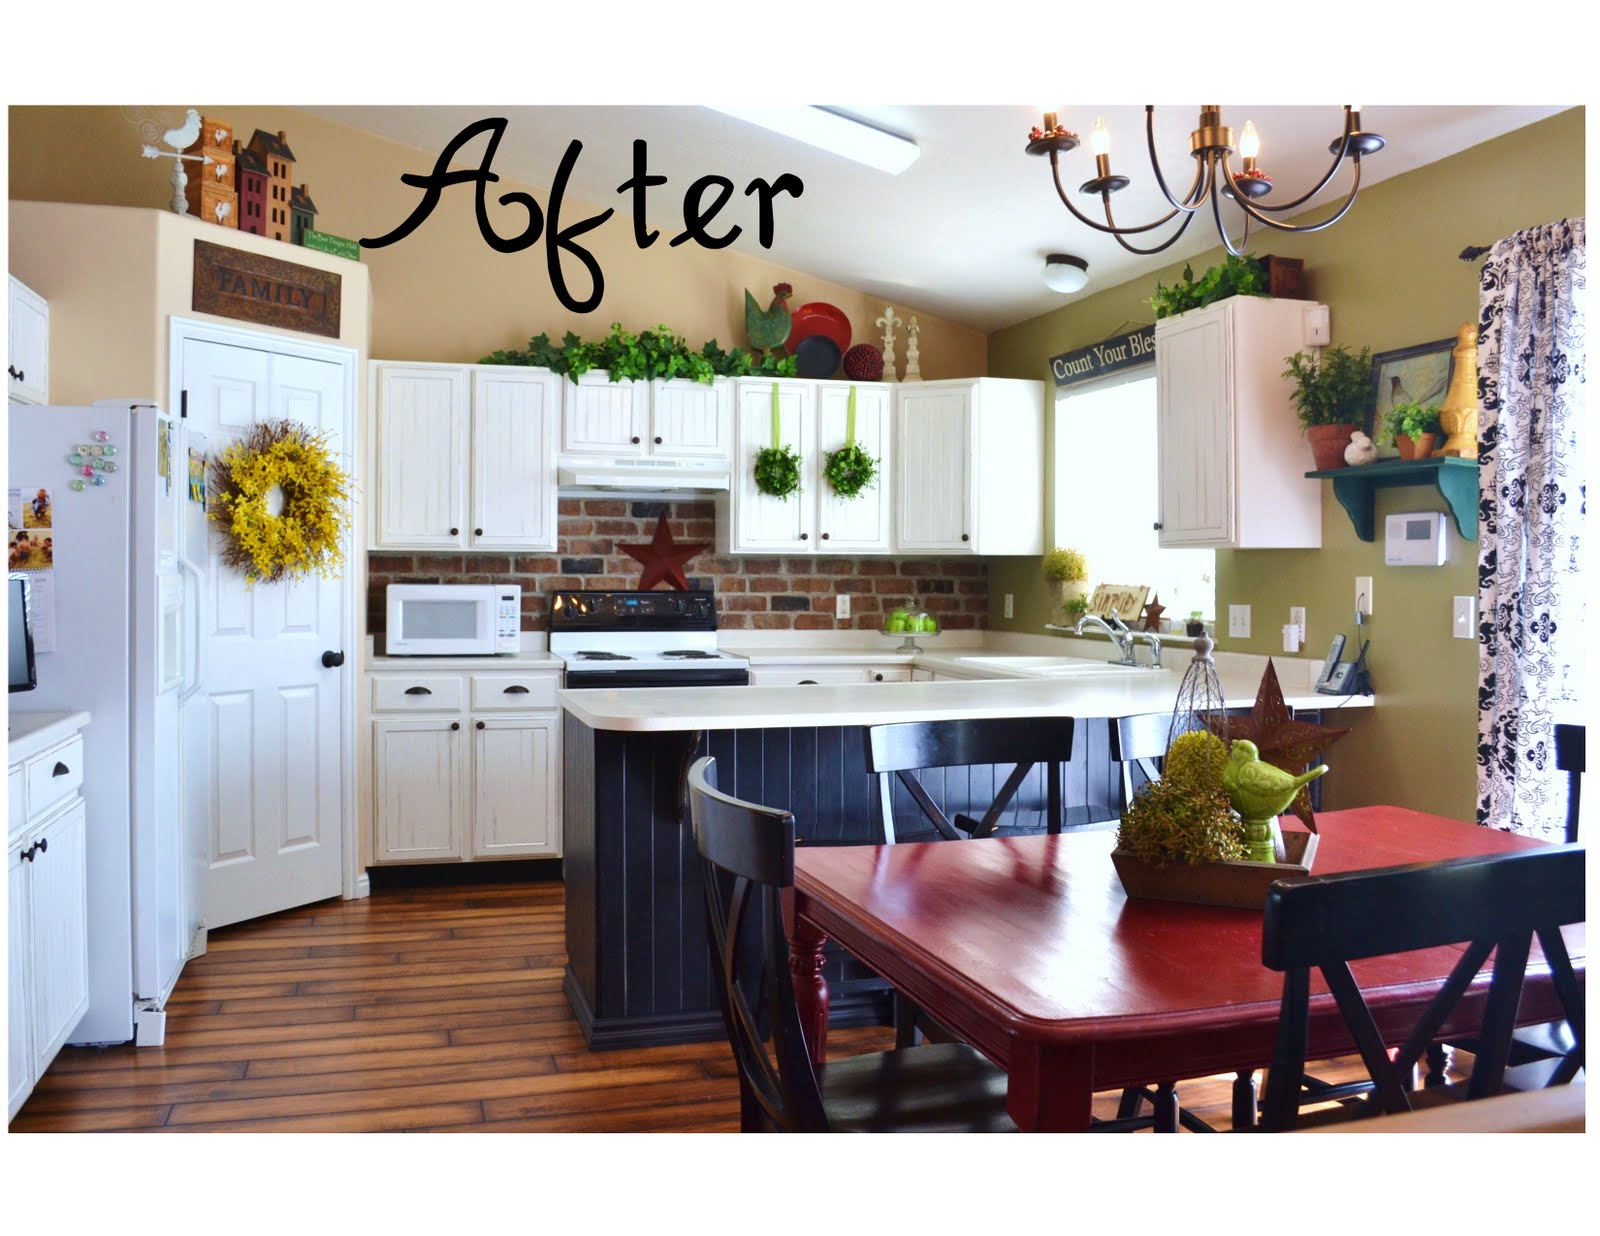 can be viewed on her blog at ~ Lemonade (Jeralyn) Kitchen Makeover